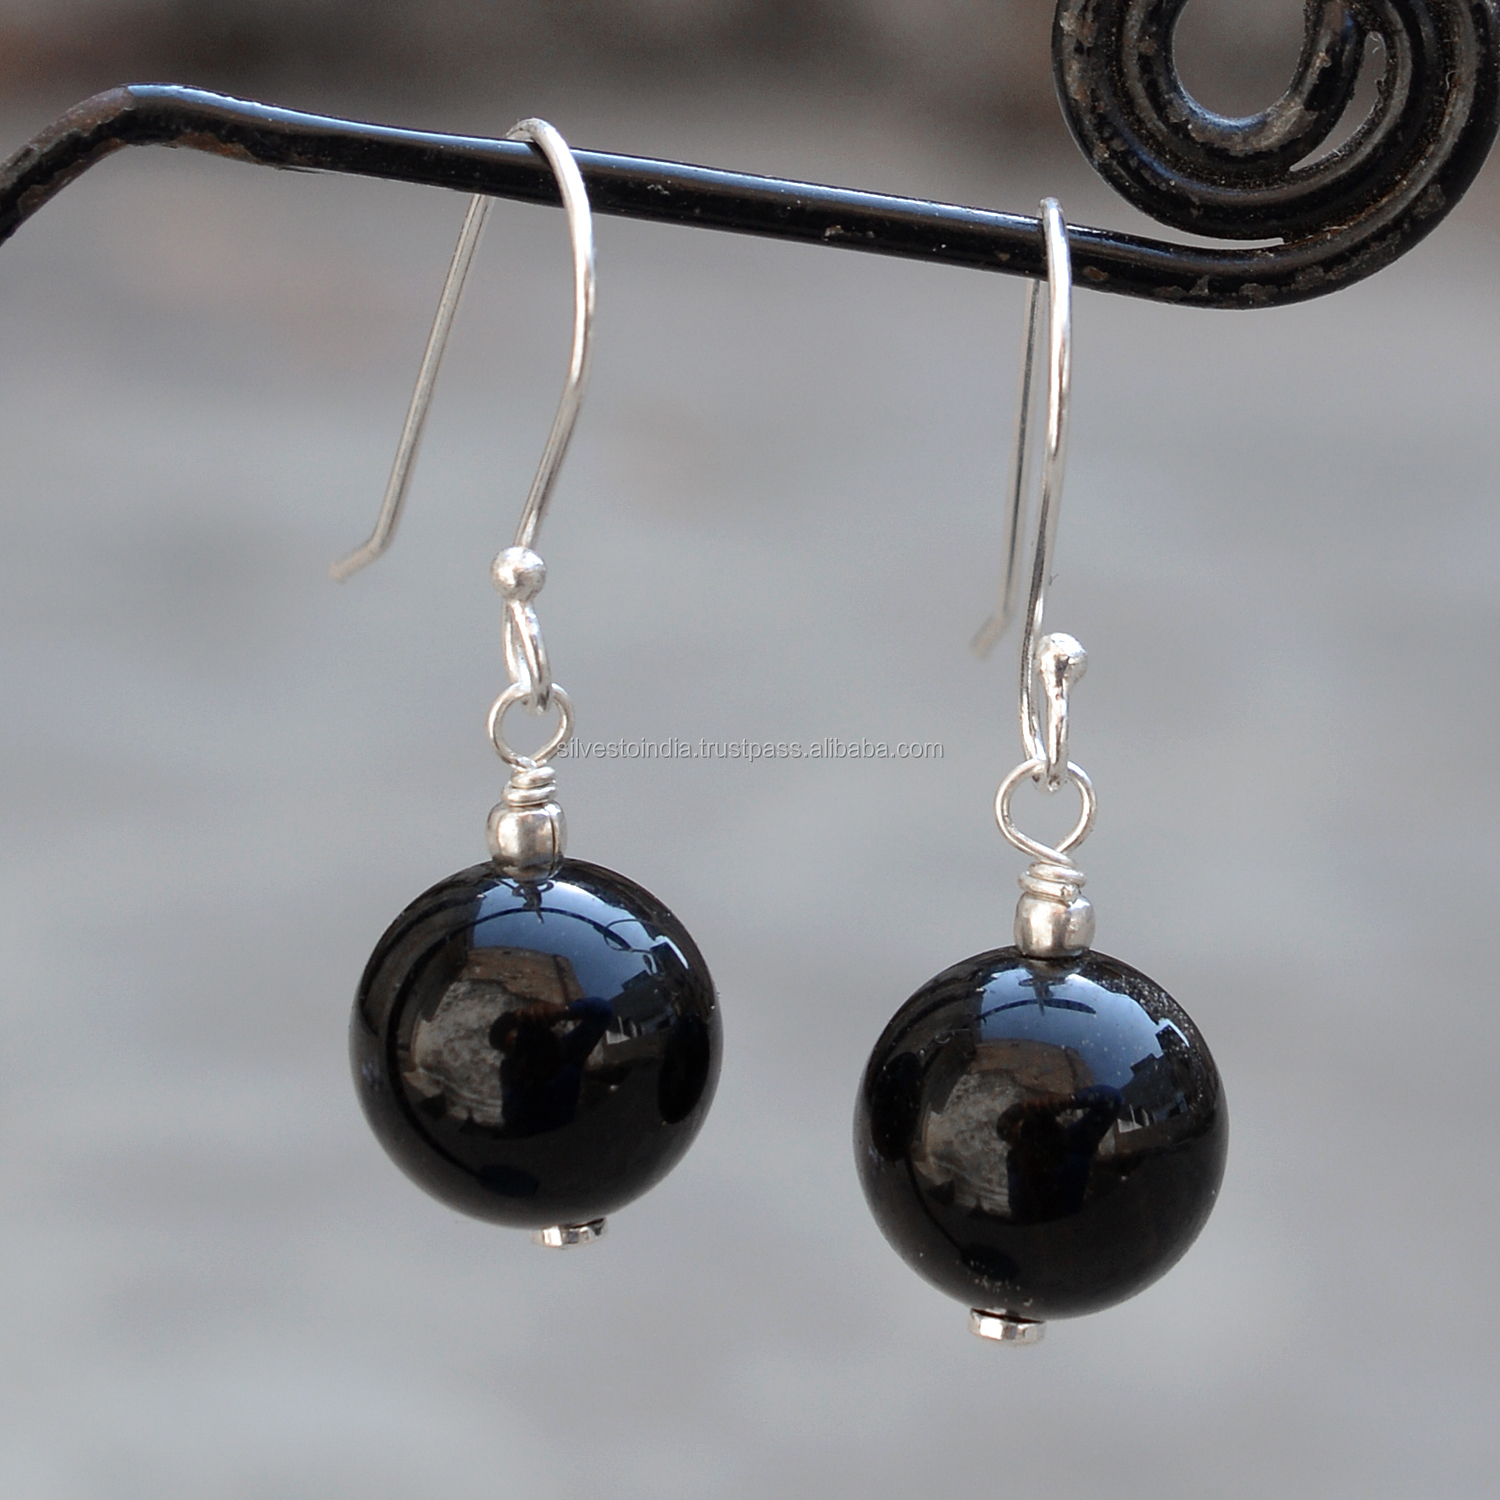 Round Onyx Mexican Silver Plate Earrings